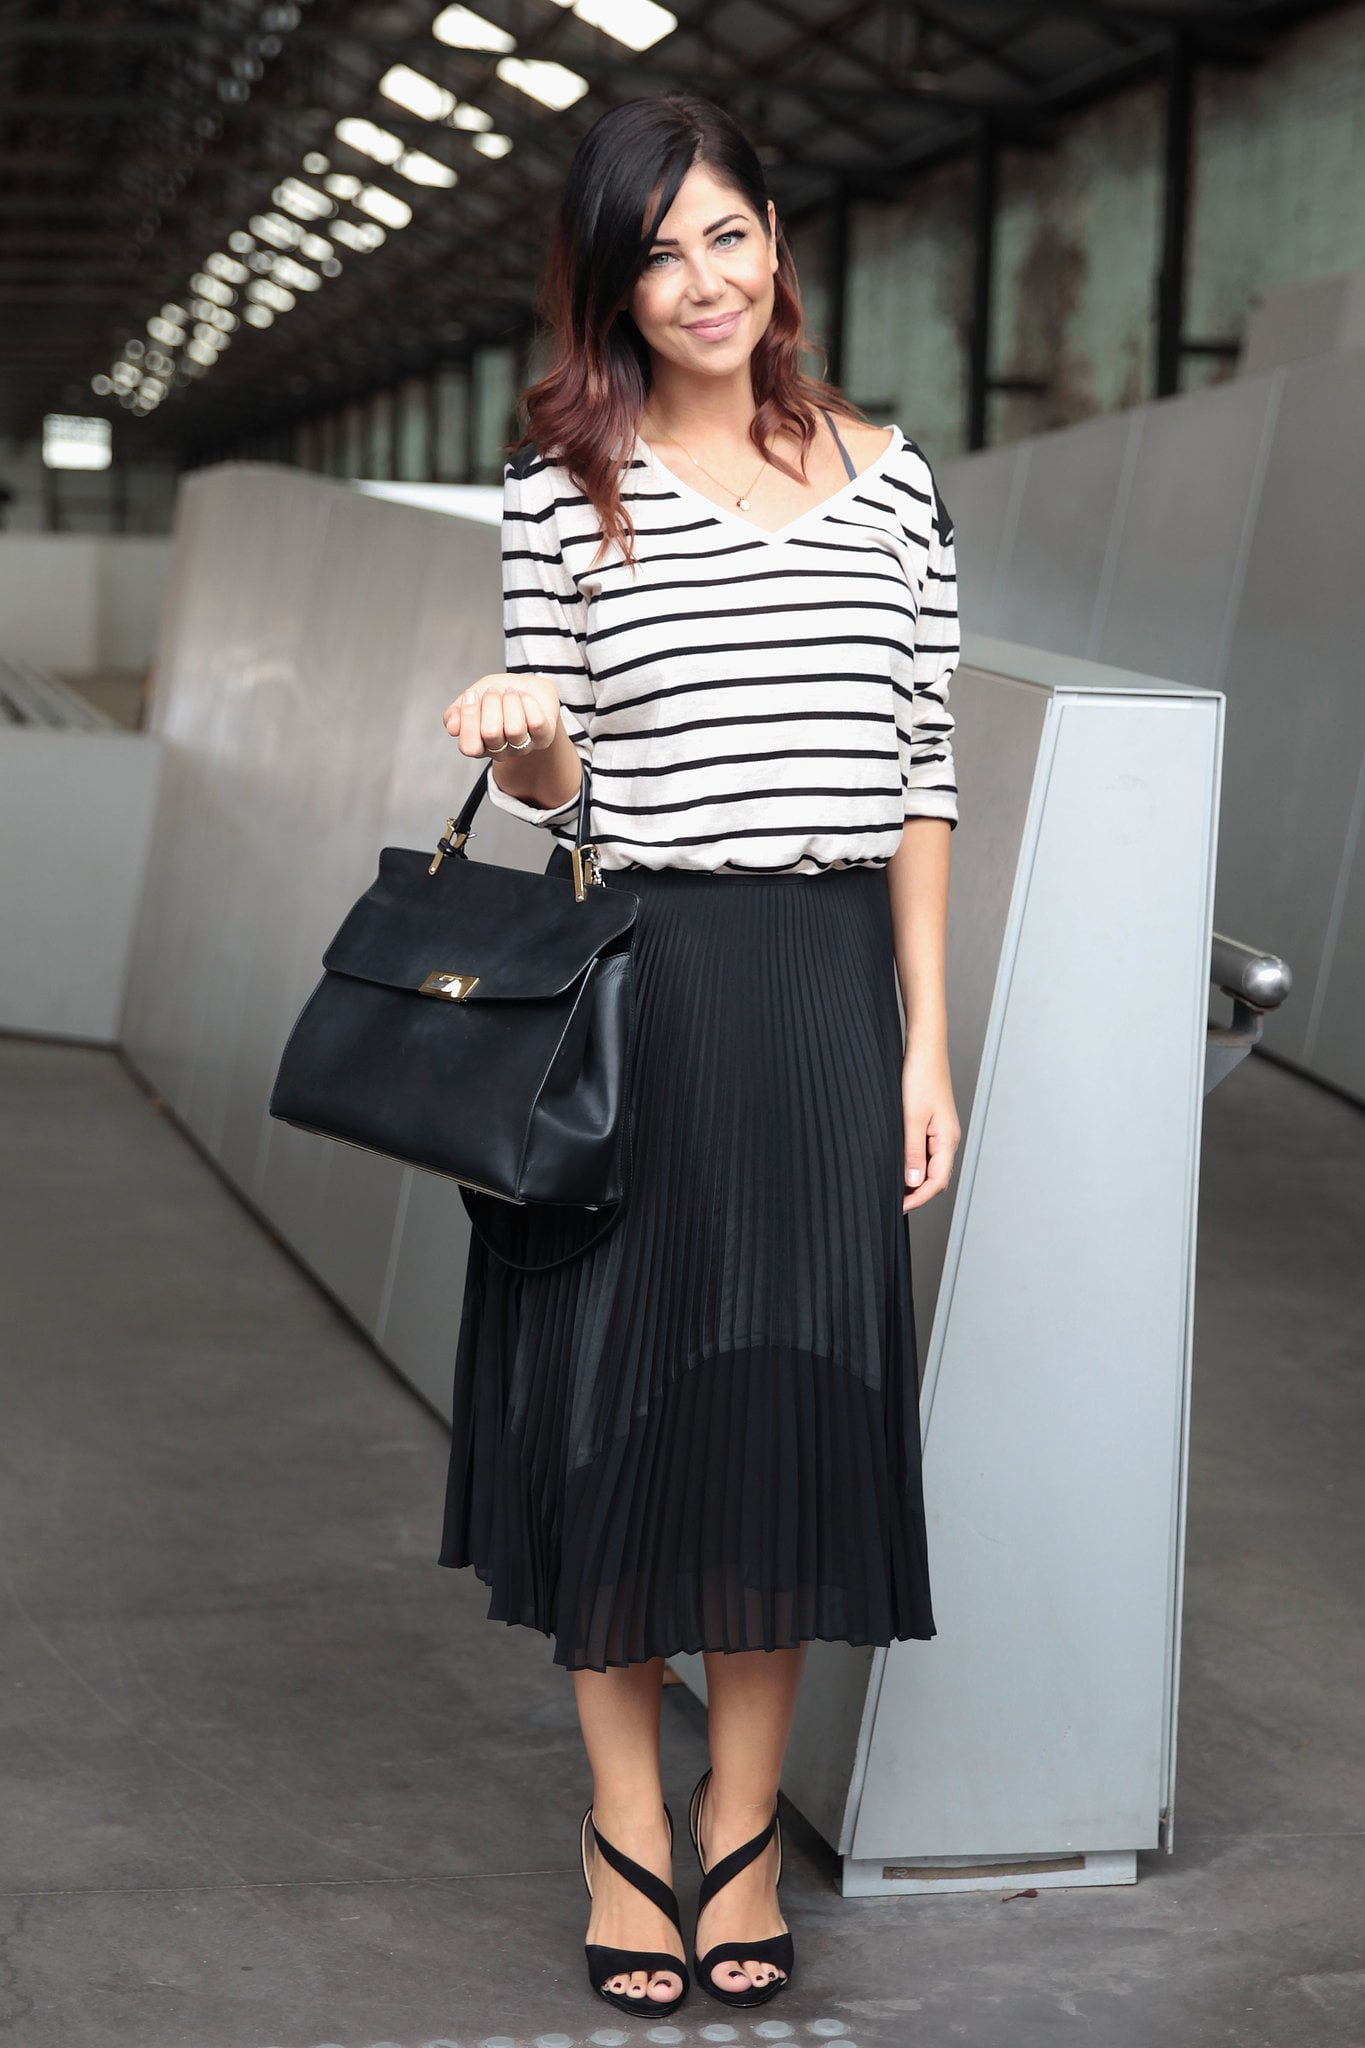 This black and white look is ideal for a Summer day at the office. It's sophisticated and chic.